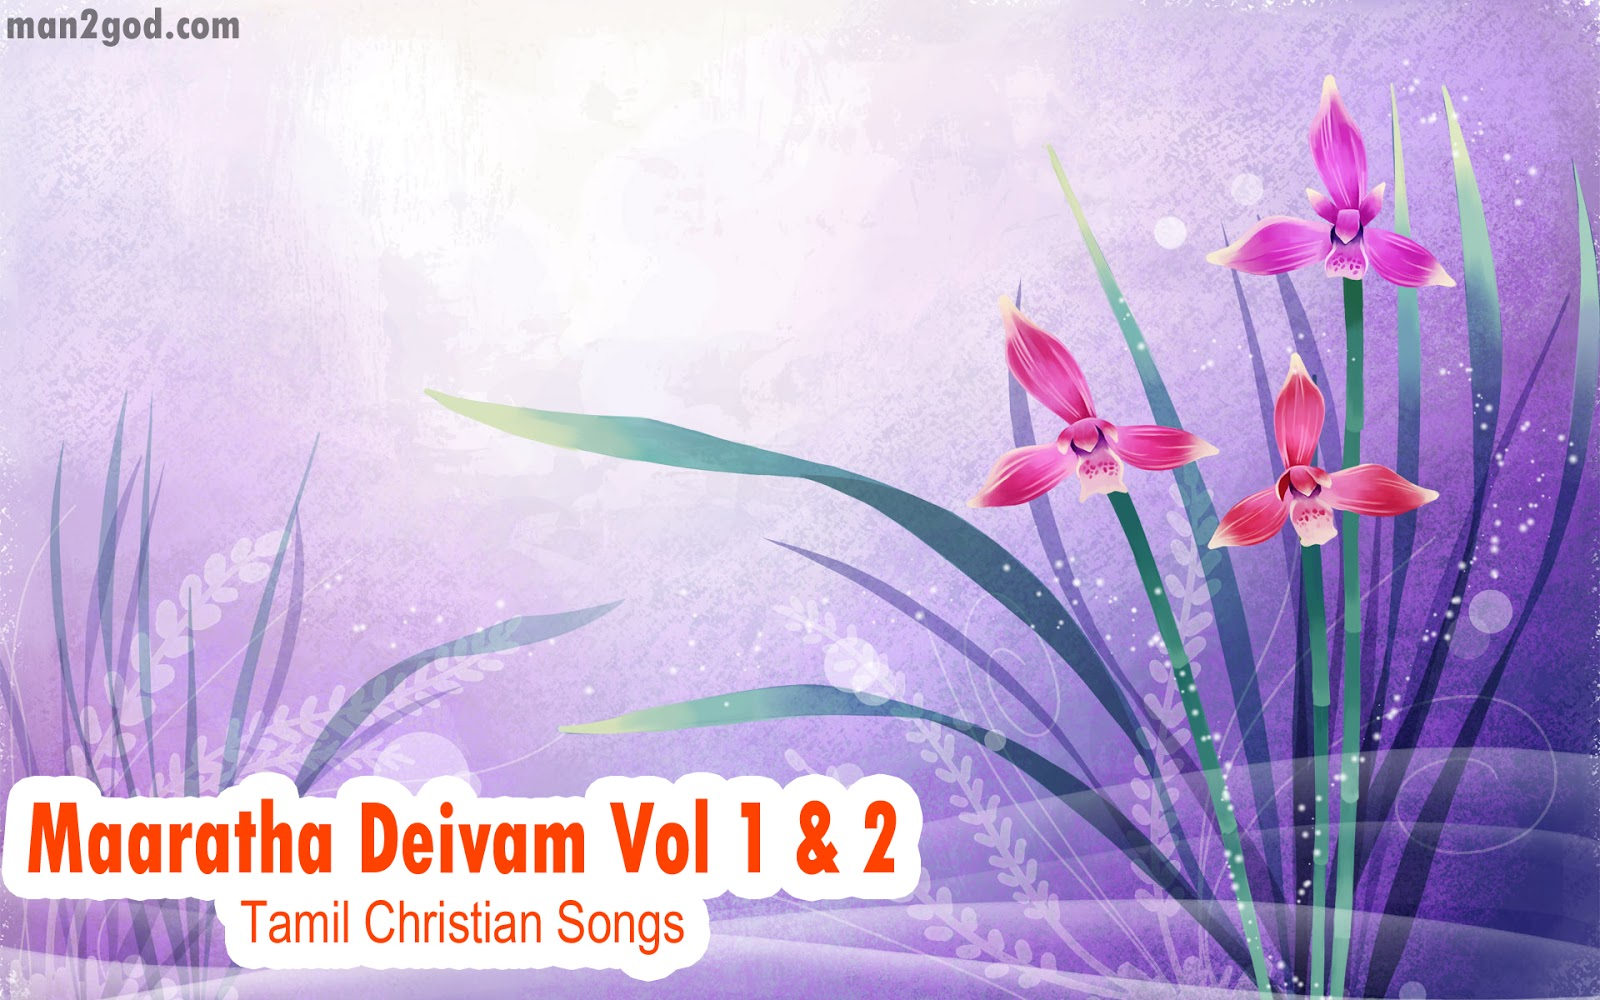 Tamil jesus songs download for mobile